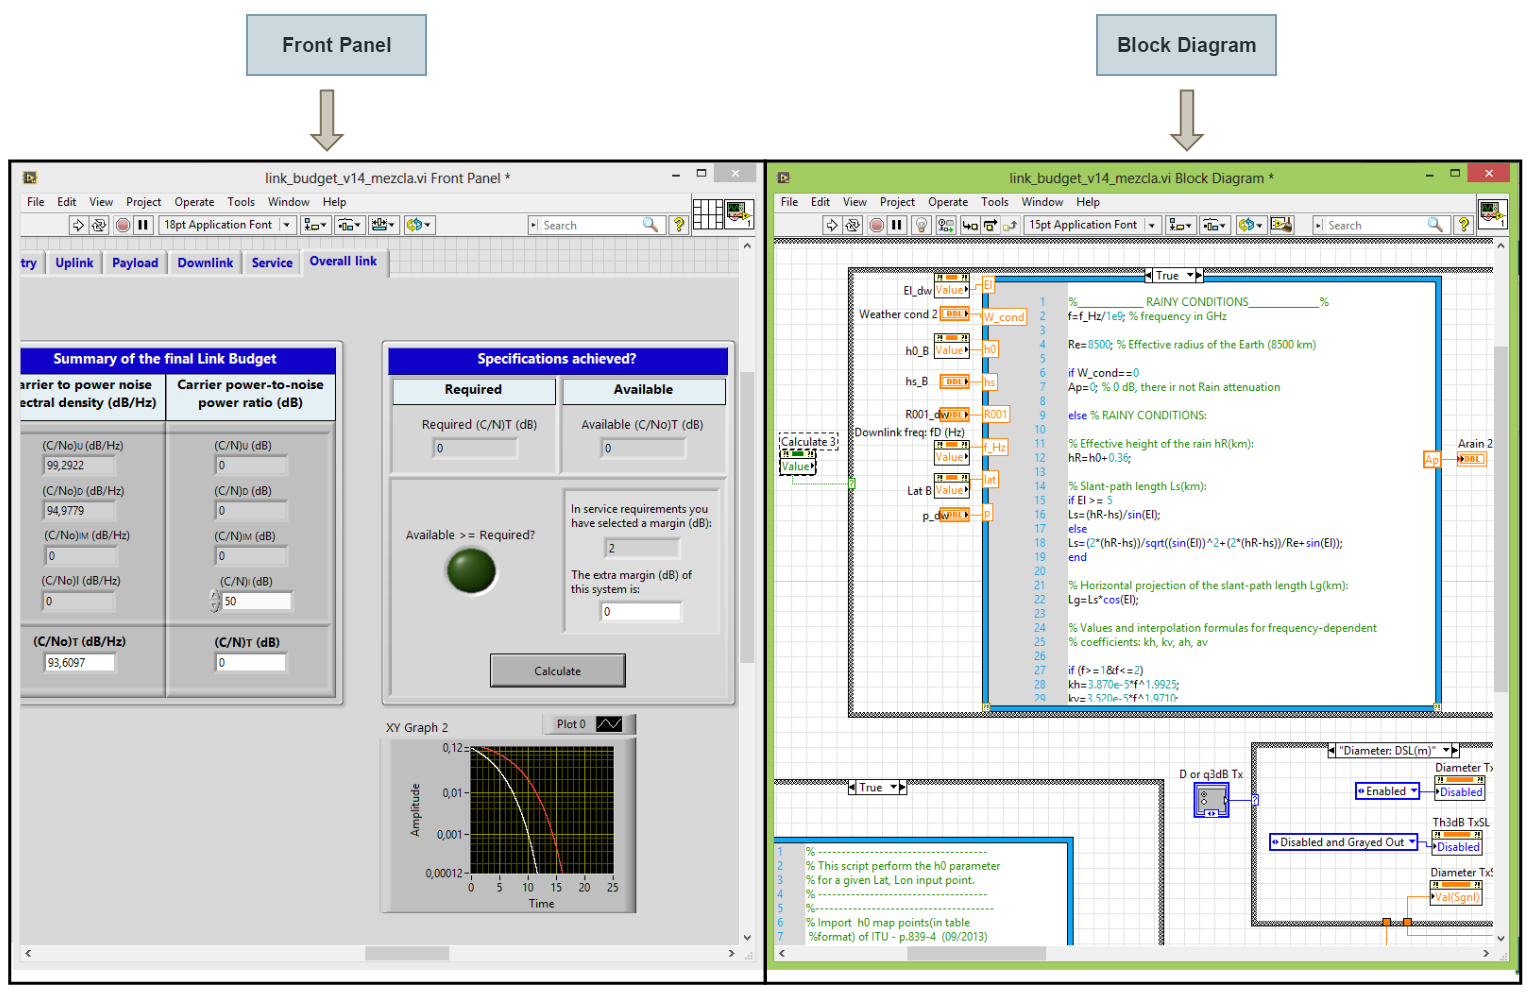 Software Tool 2014 Satlinktool A For Analysing Geo Satcom Block Diagram Programming Front Panel With The Final User Application Left And Window Right